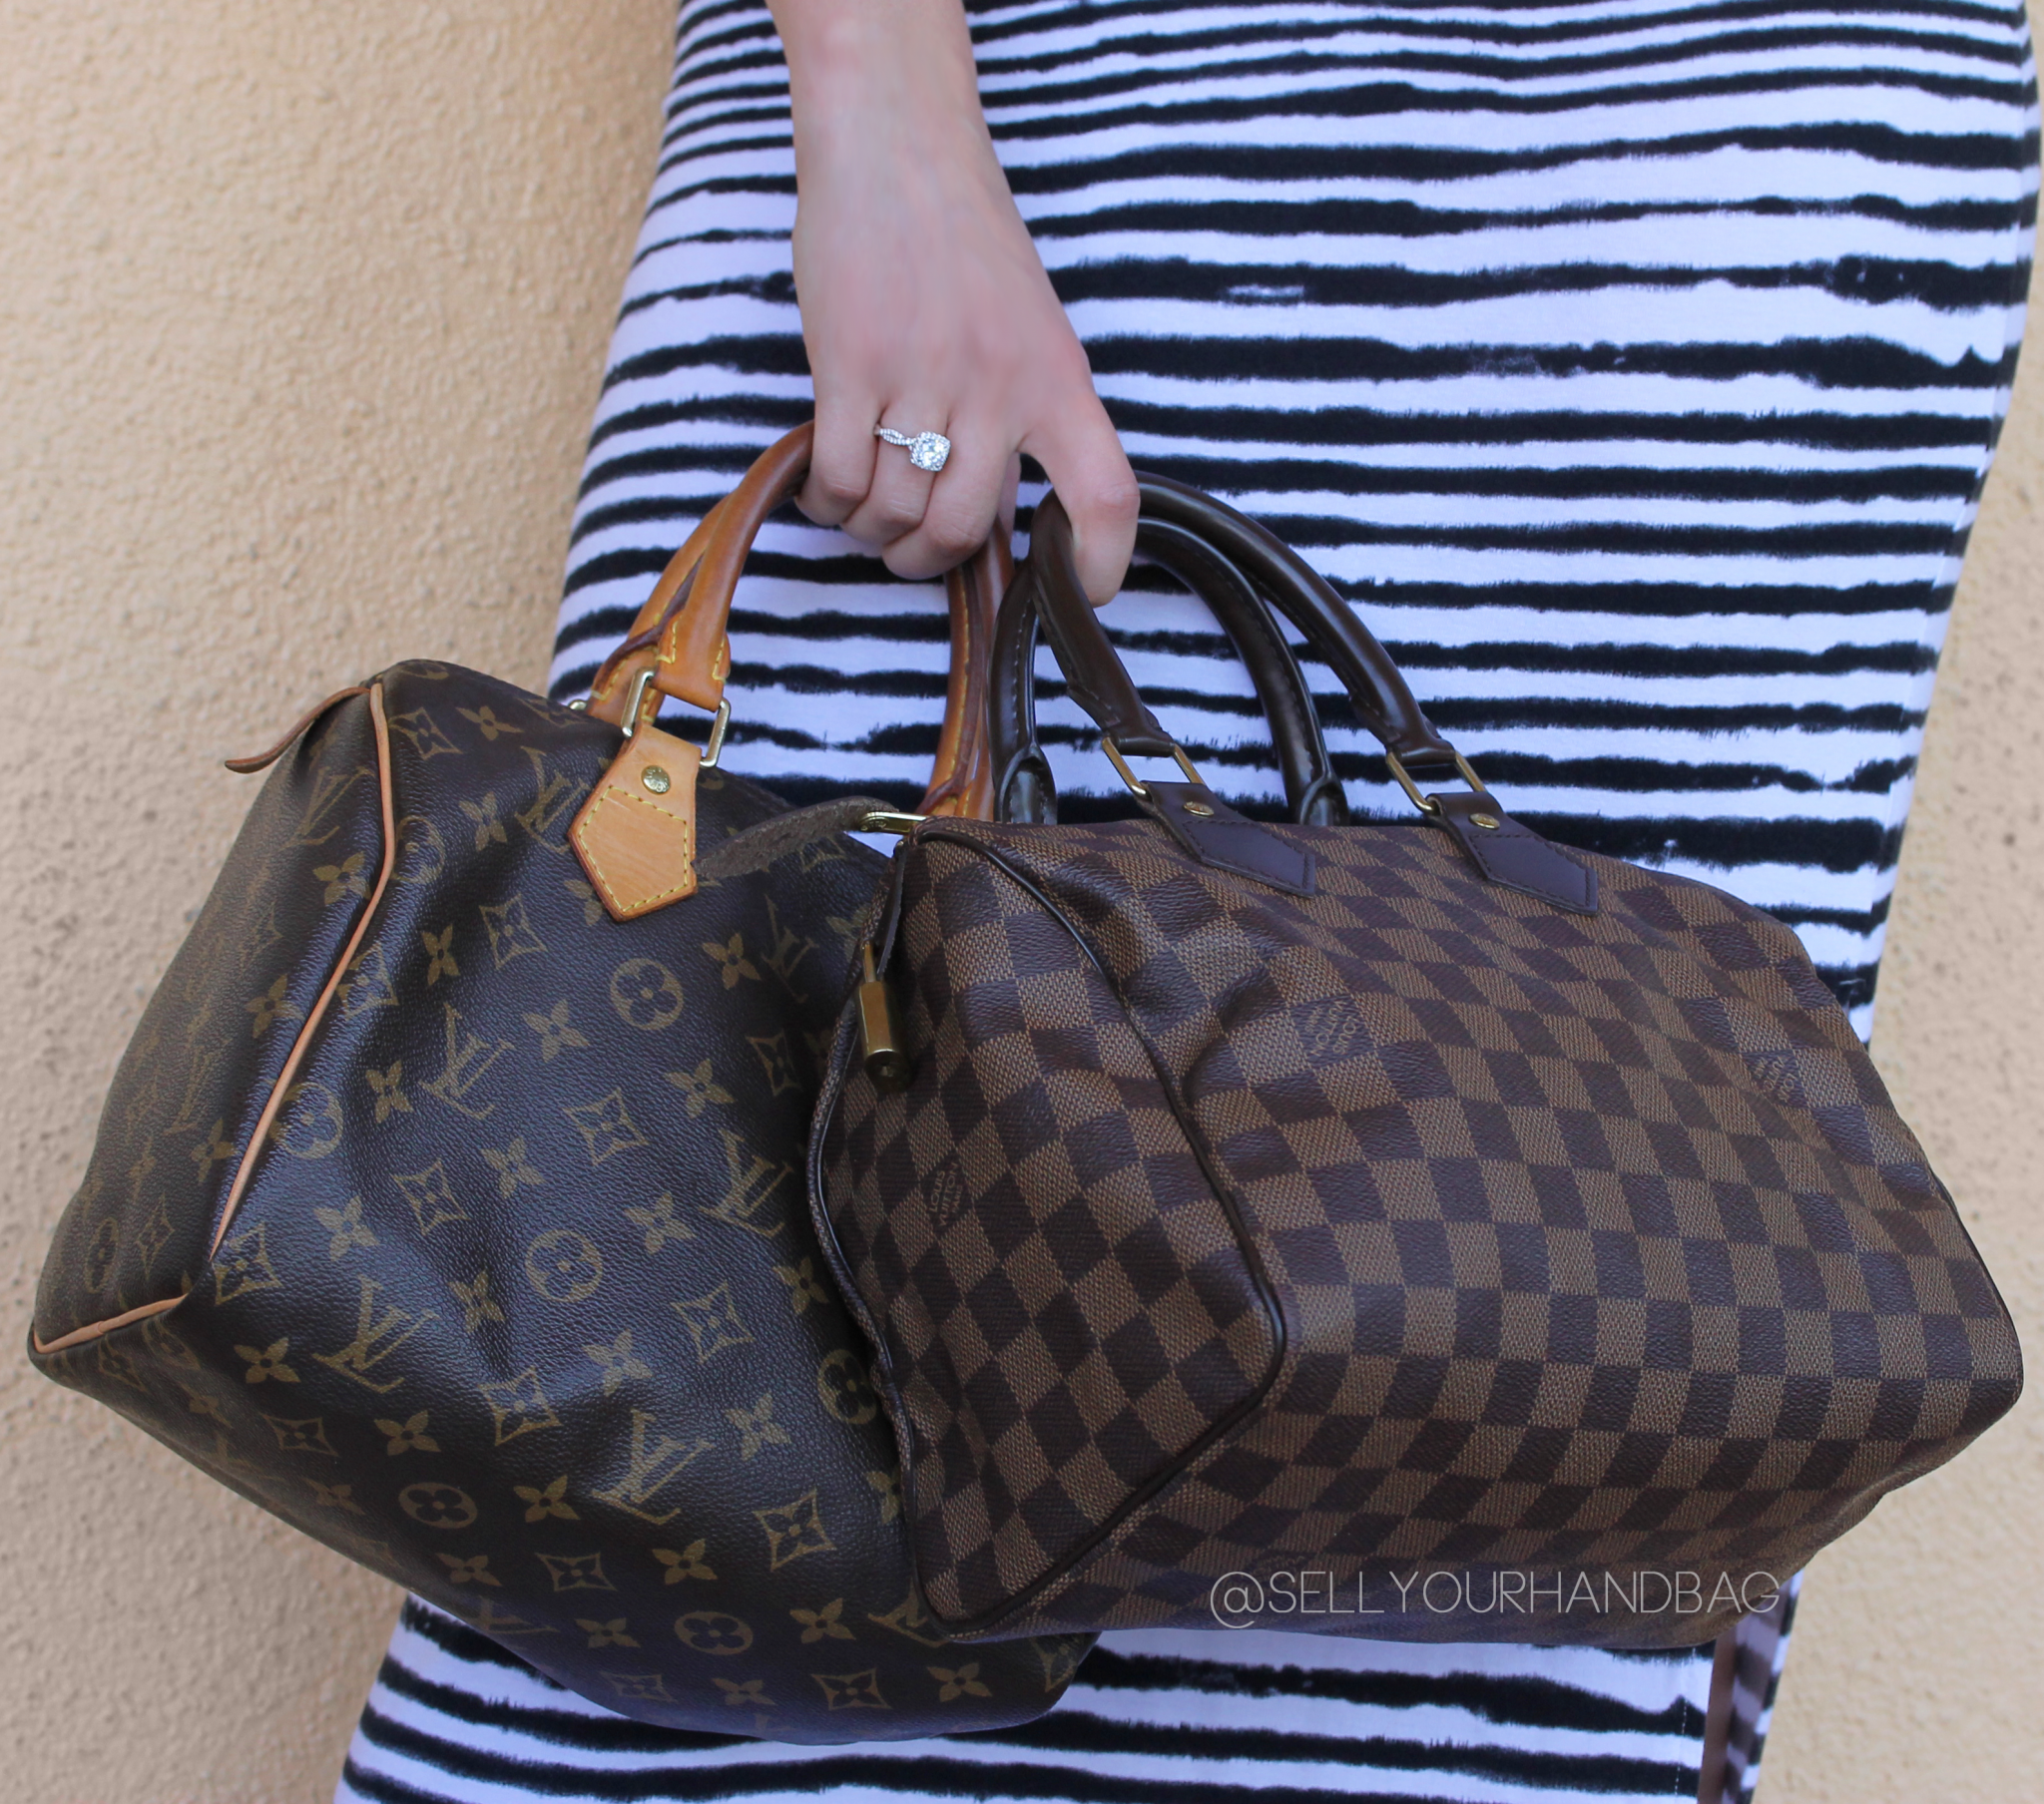 Monogram and Damier Louis Vuitton